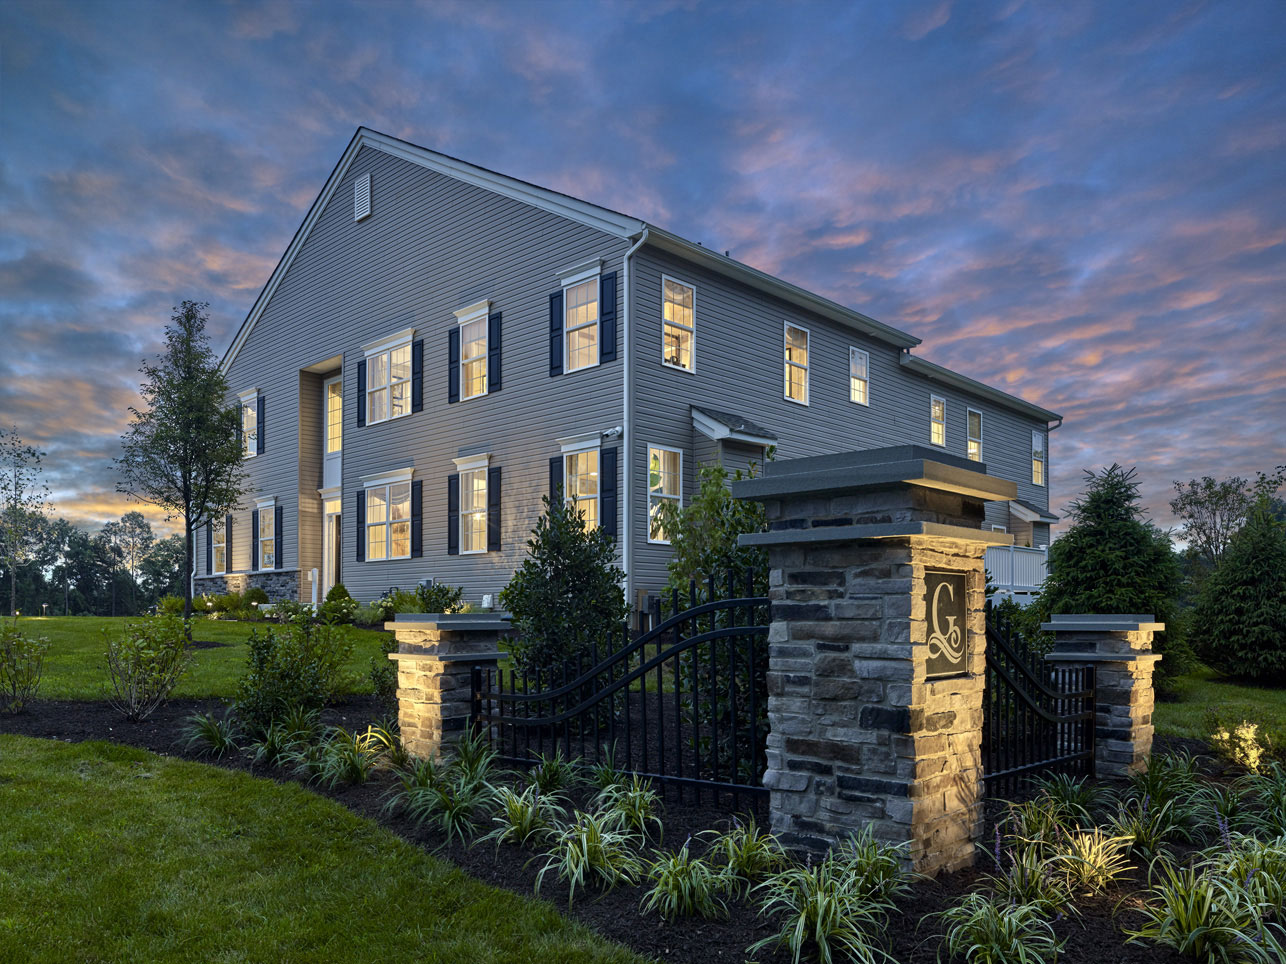 Reserve at glen loch house for sale in West Chester, PA